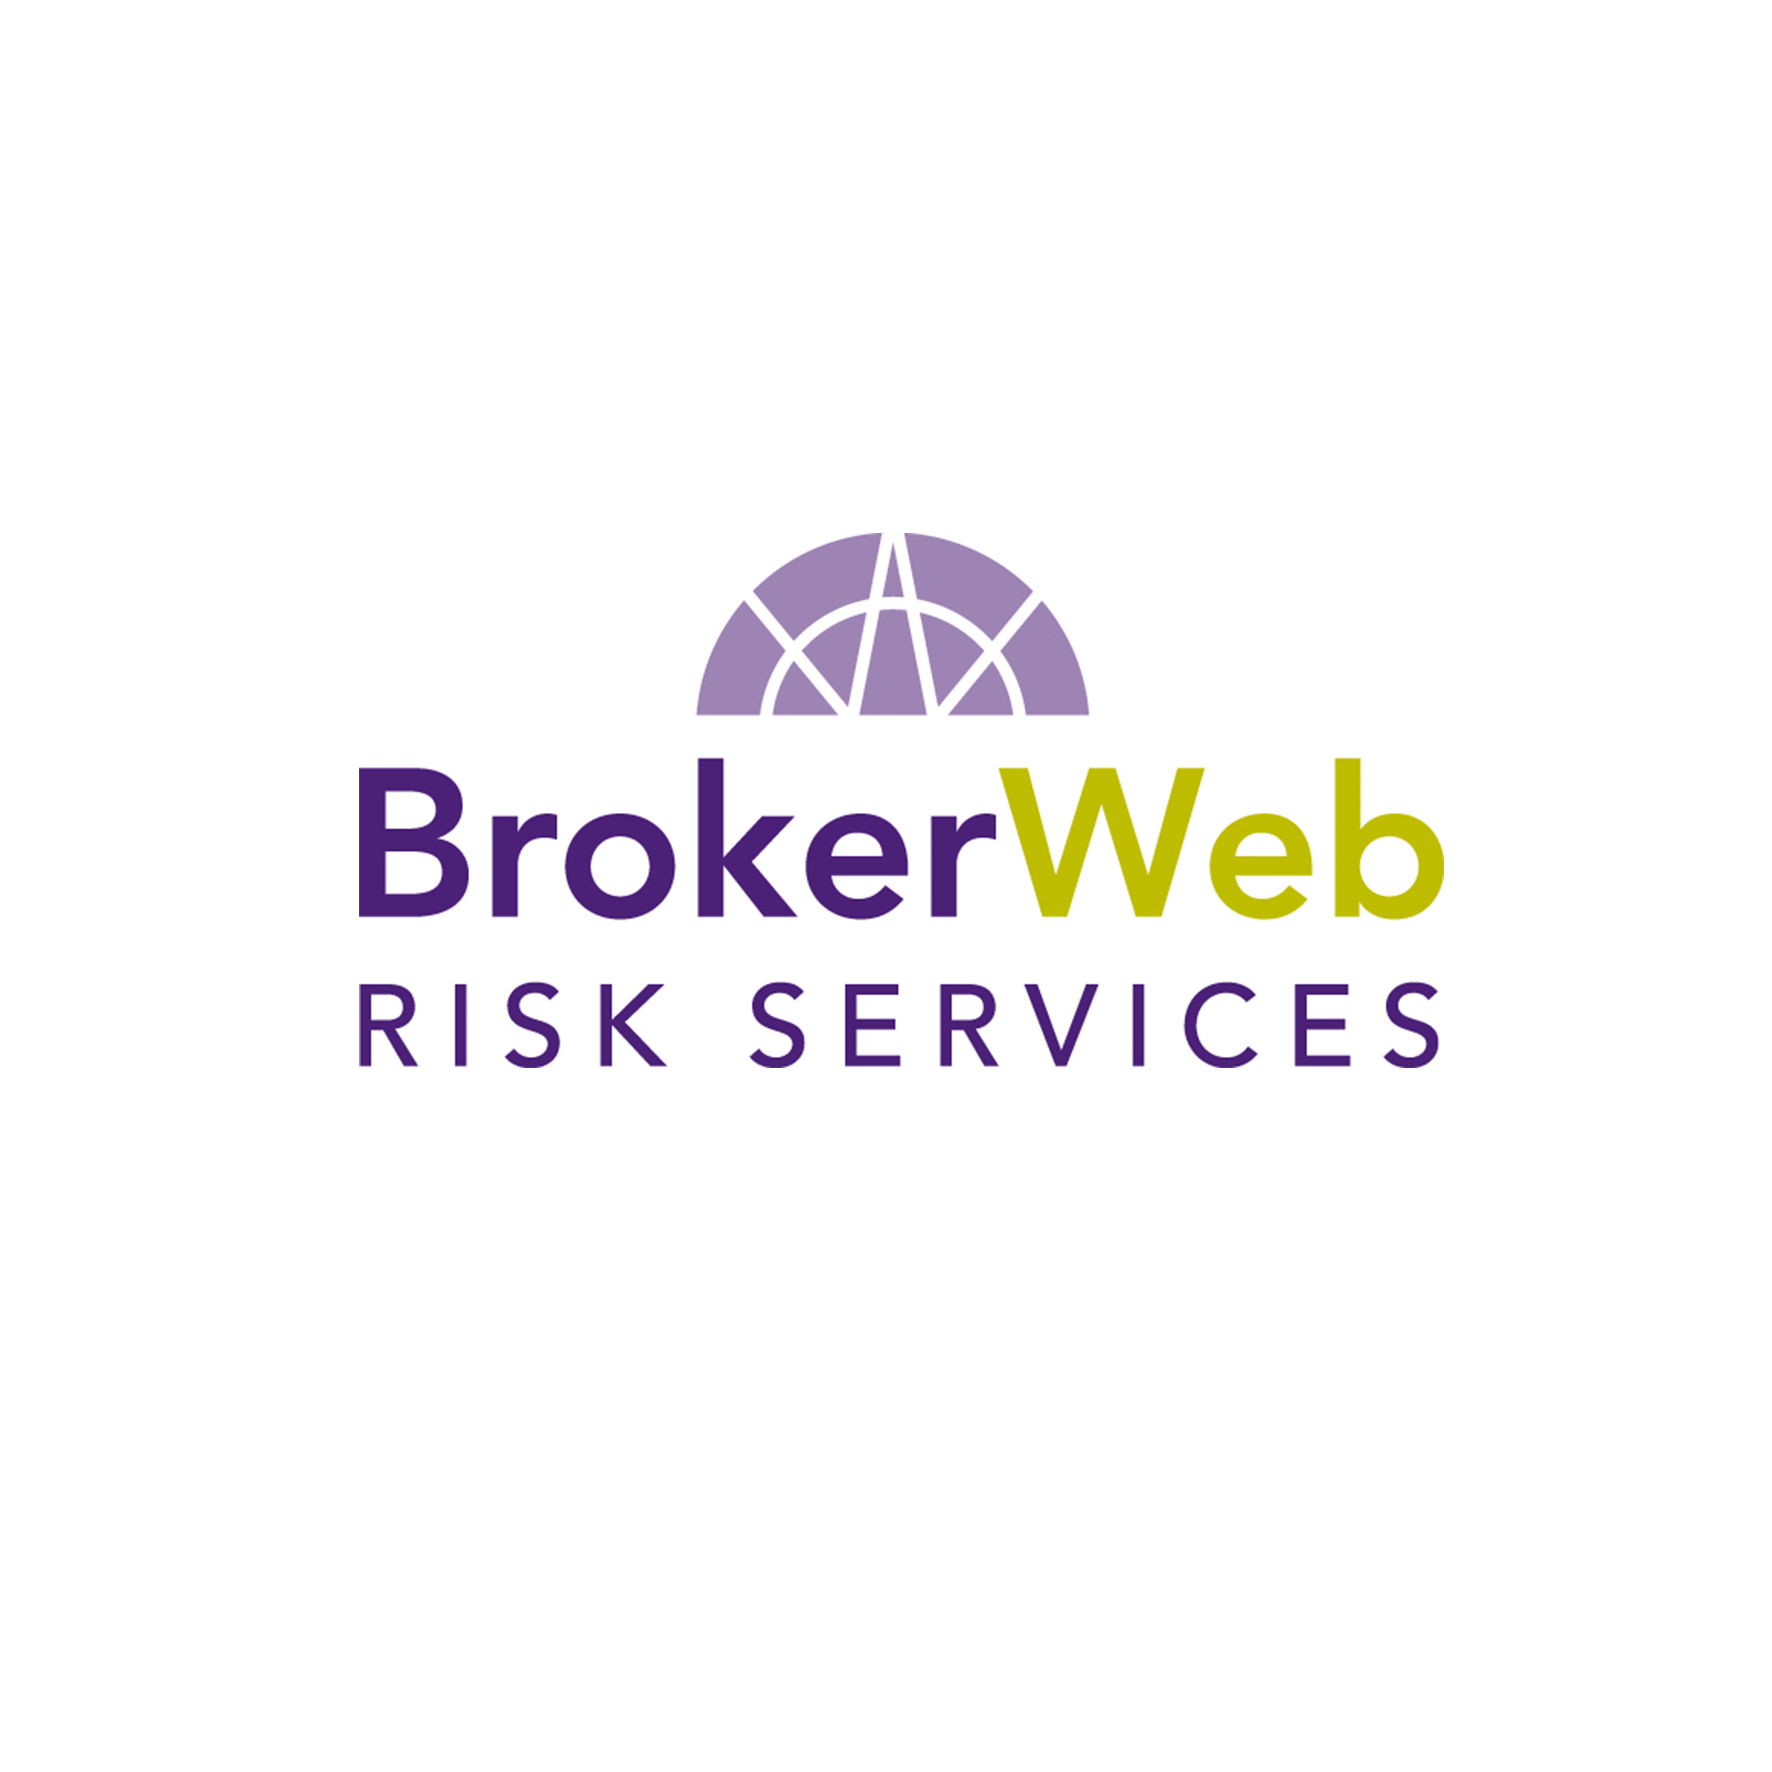 BrokerWebServices.png